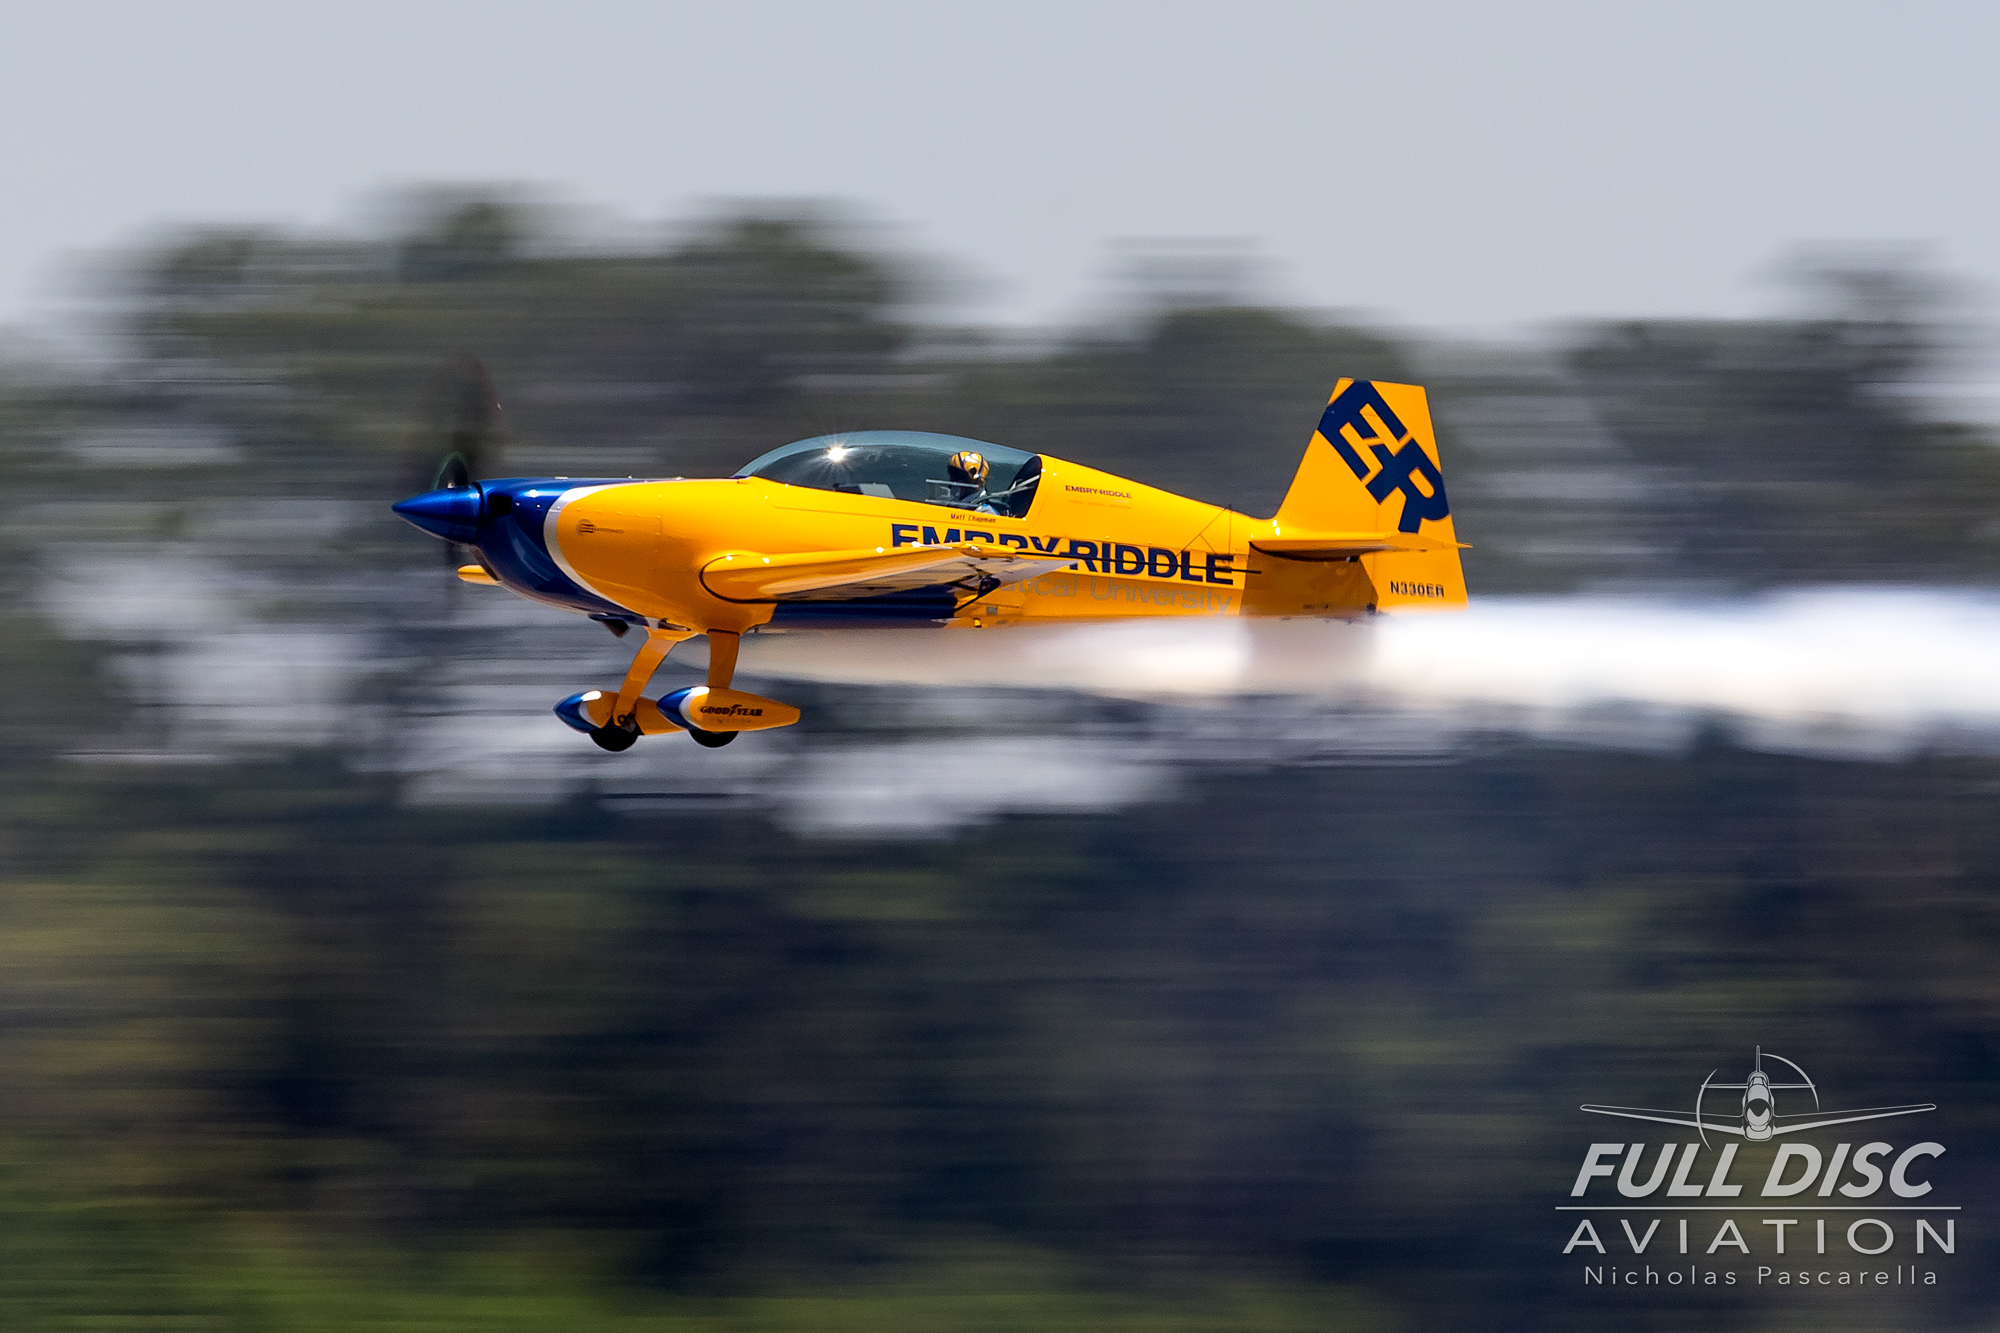 aerobatics_mcasbeaufort_nicholaspascarella_fulldiscavation_aviation_airshow.jpg